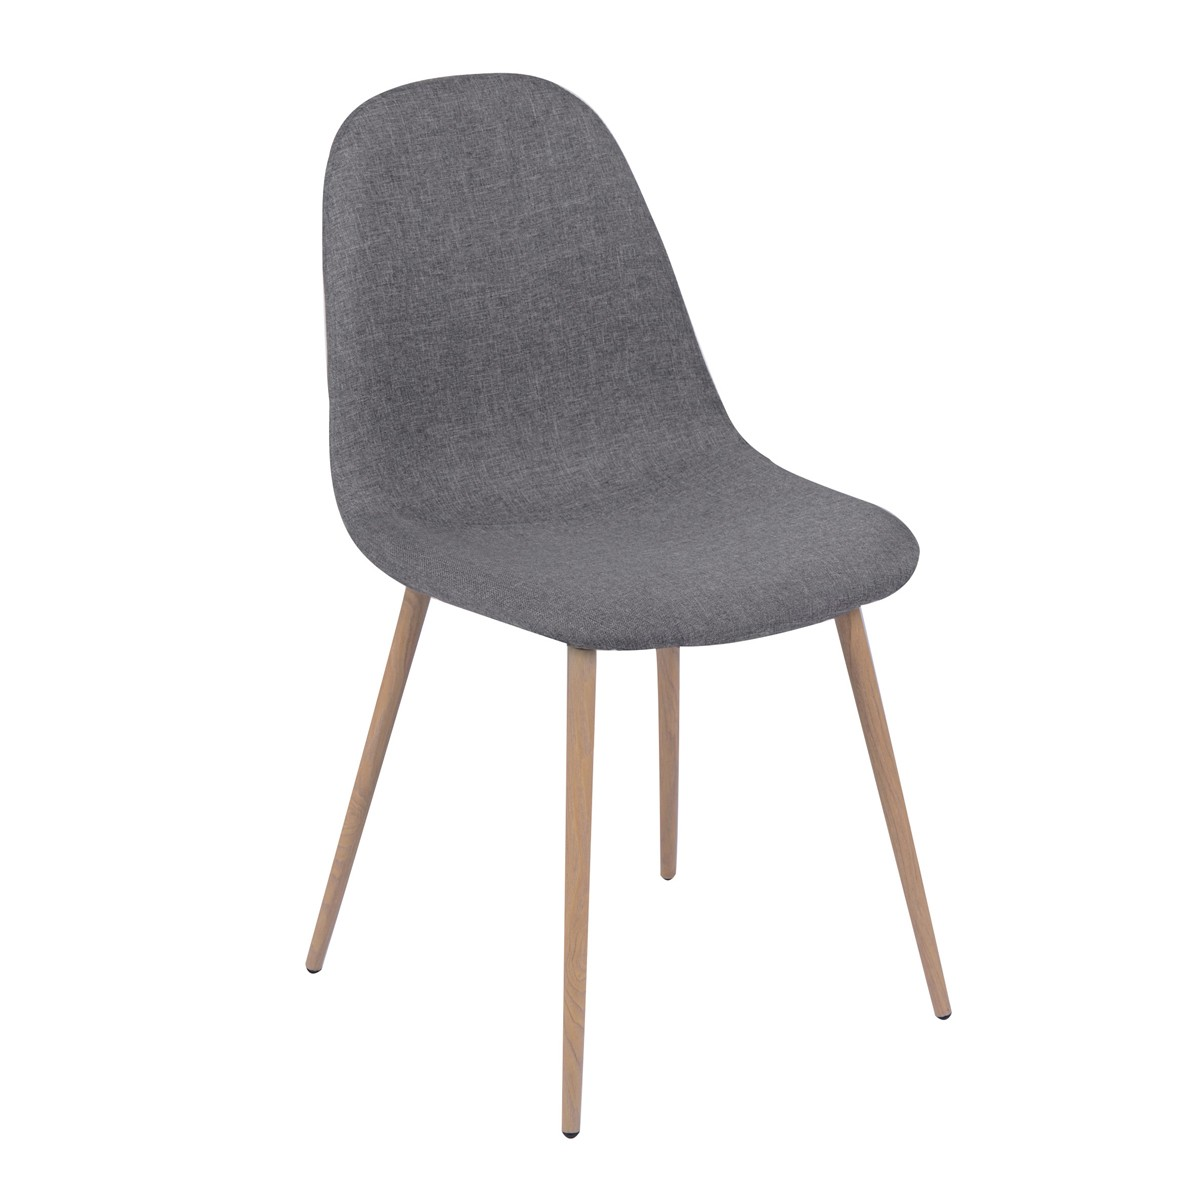 Chaise olga grise lot de 2 koya design - Chaise de bar grise ...